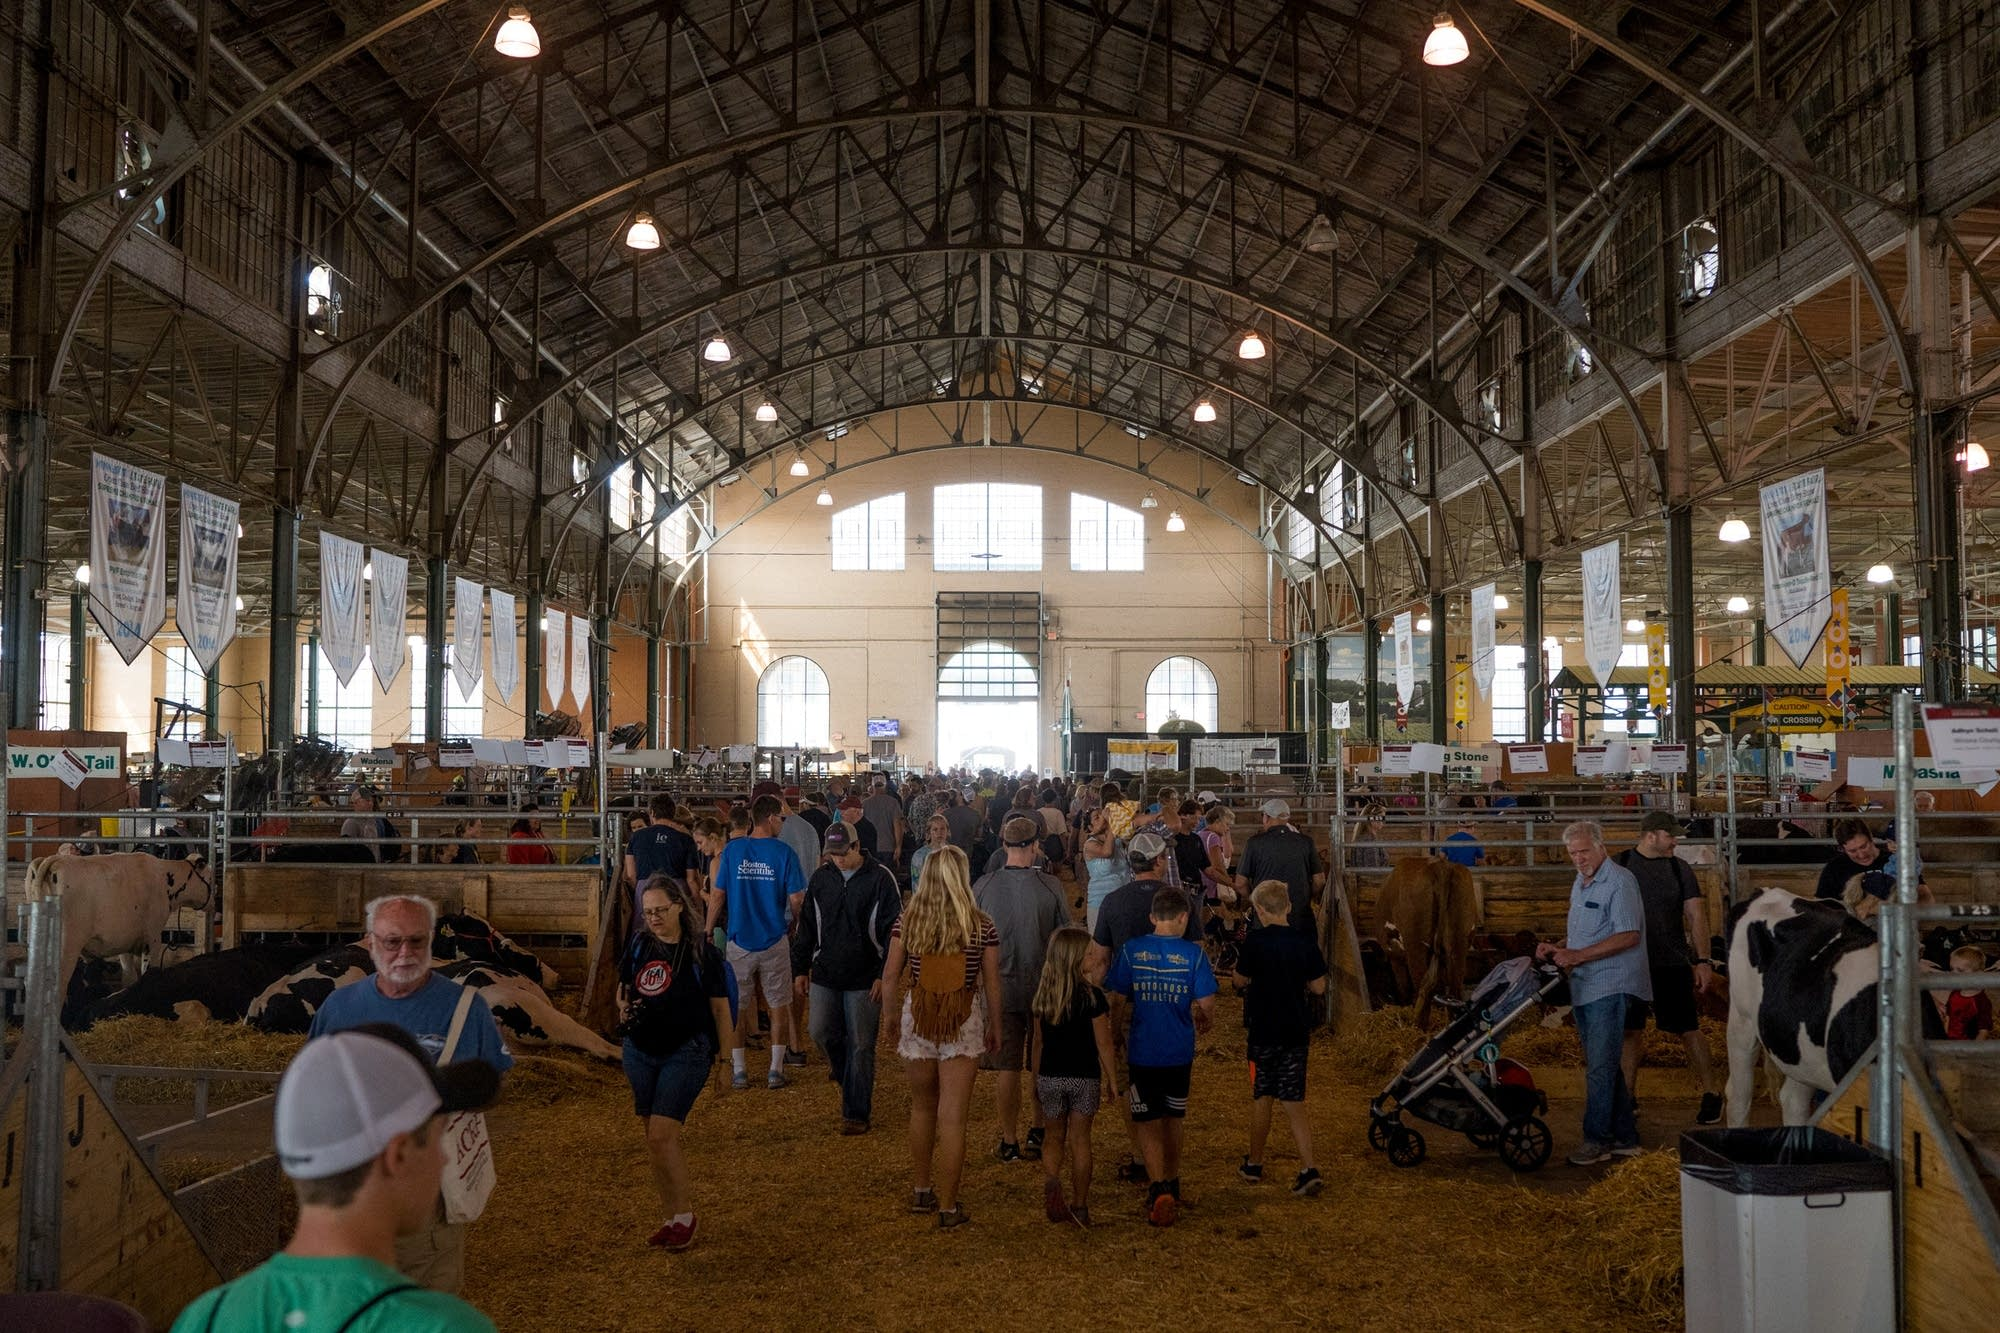 Fairgoers peruse bovine beasts inside the cow barn.